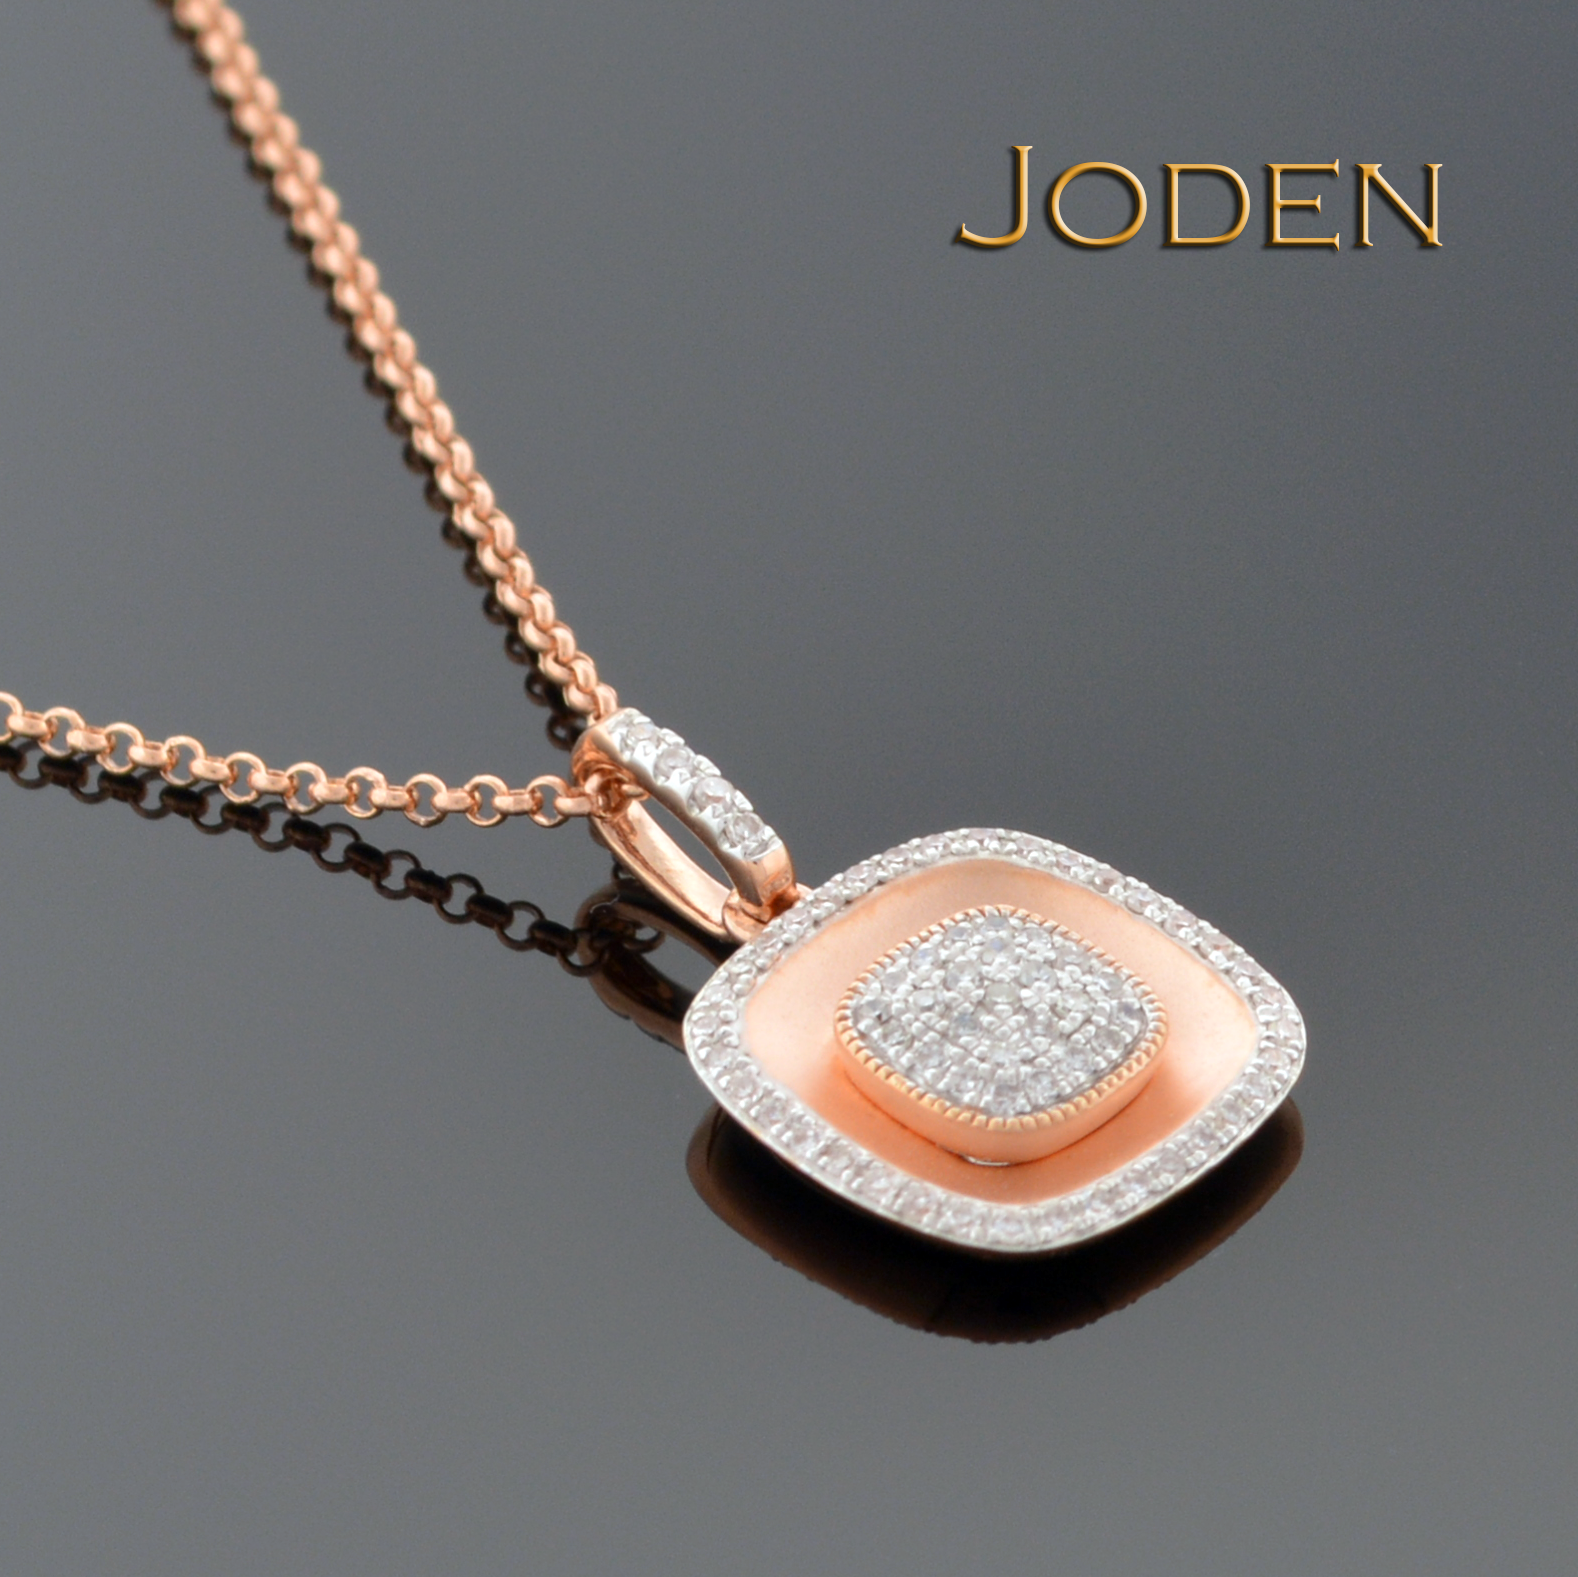 Make her smile with this k rose gold necklace and pendant offering